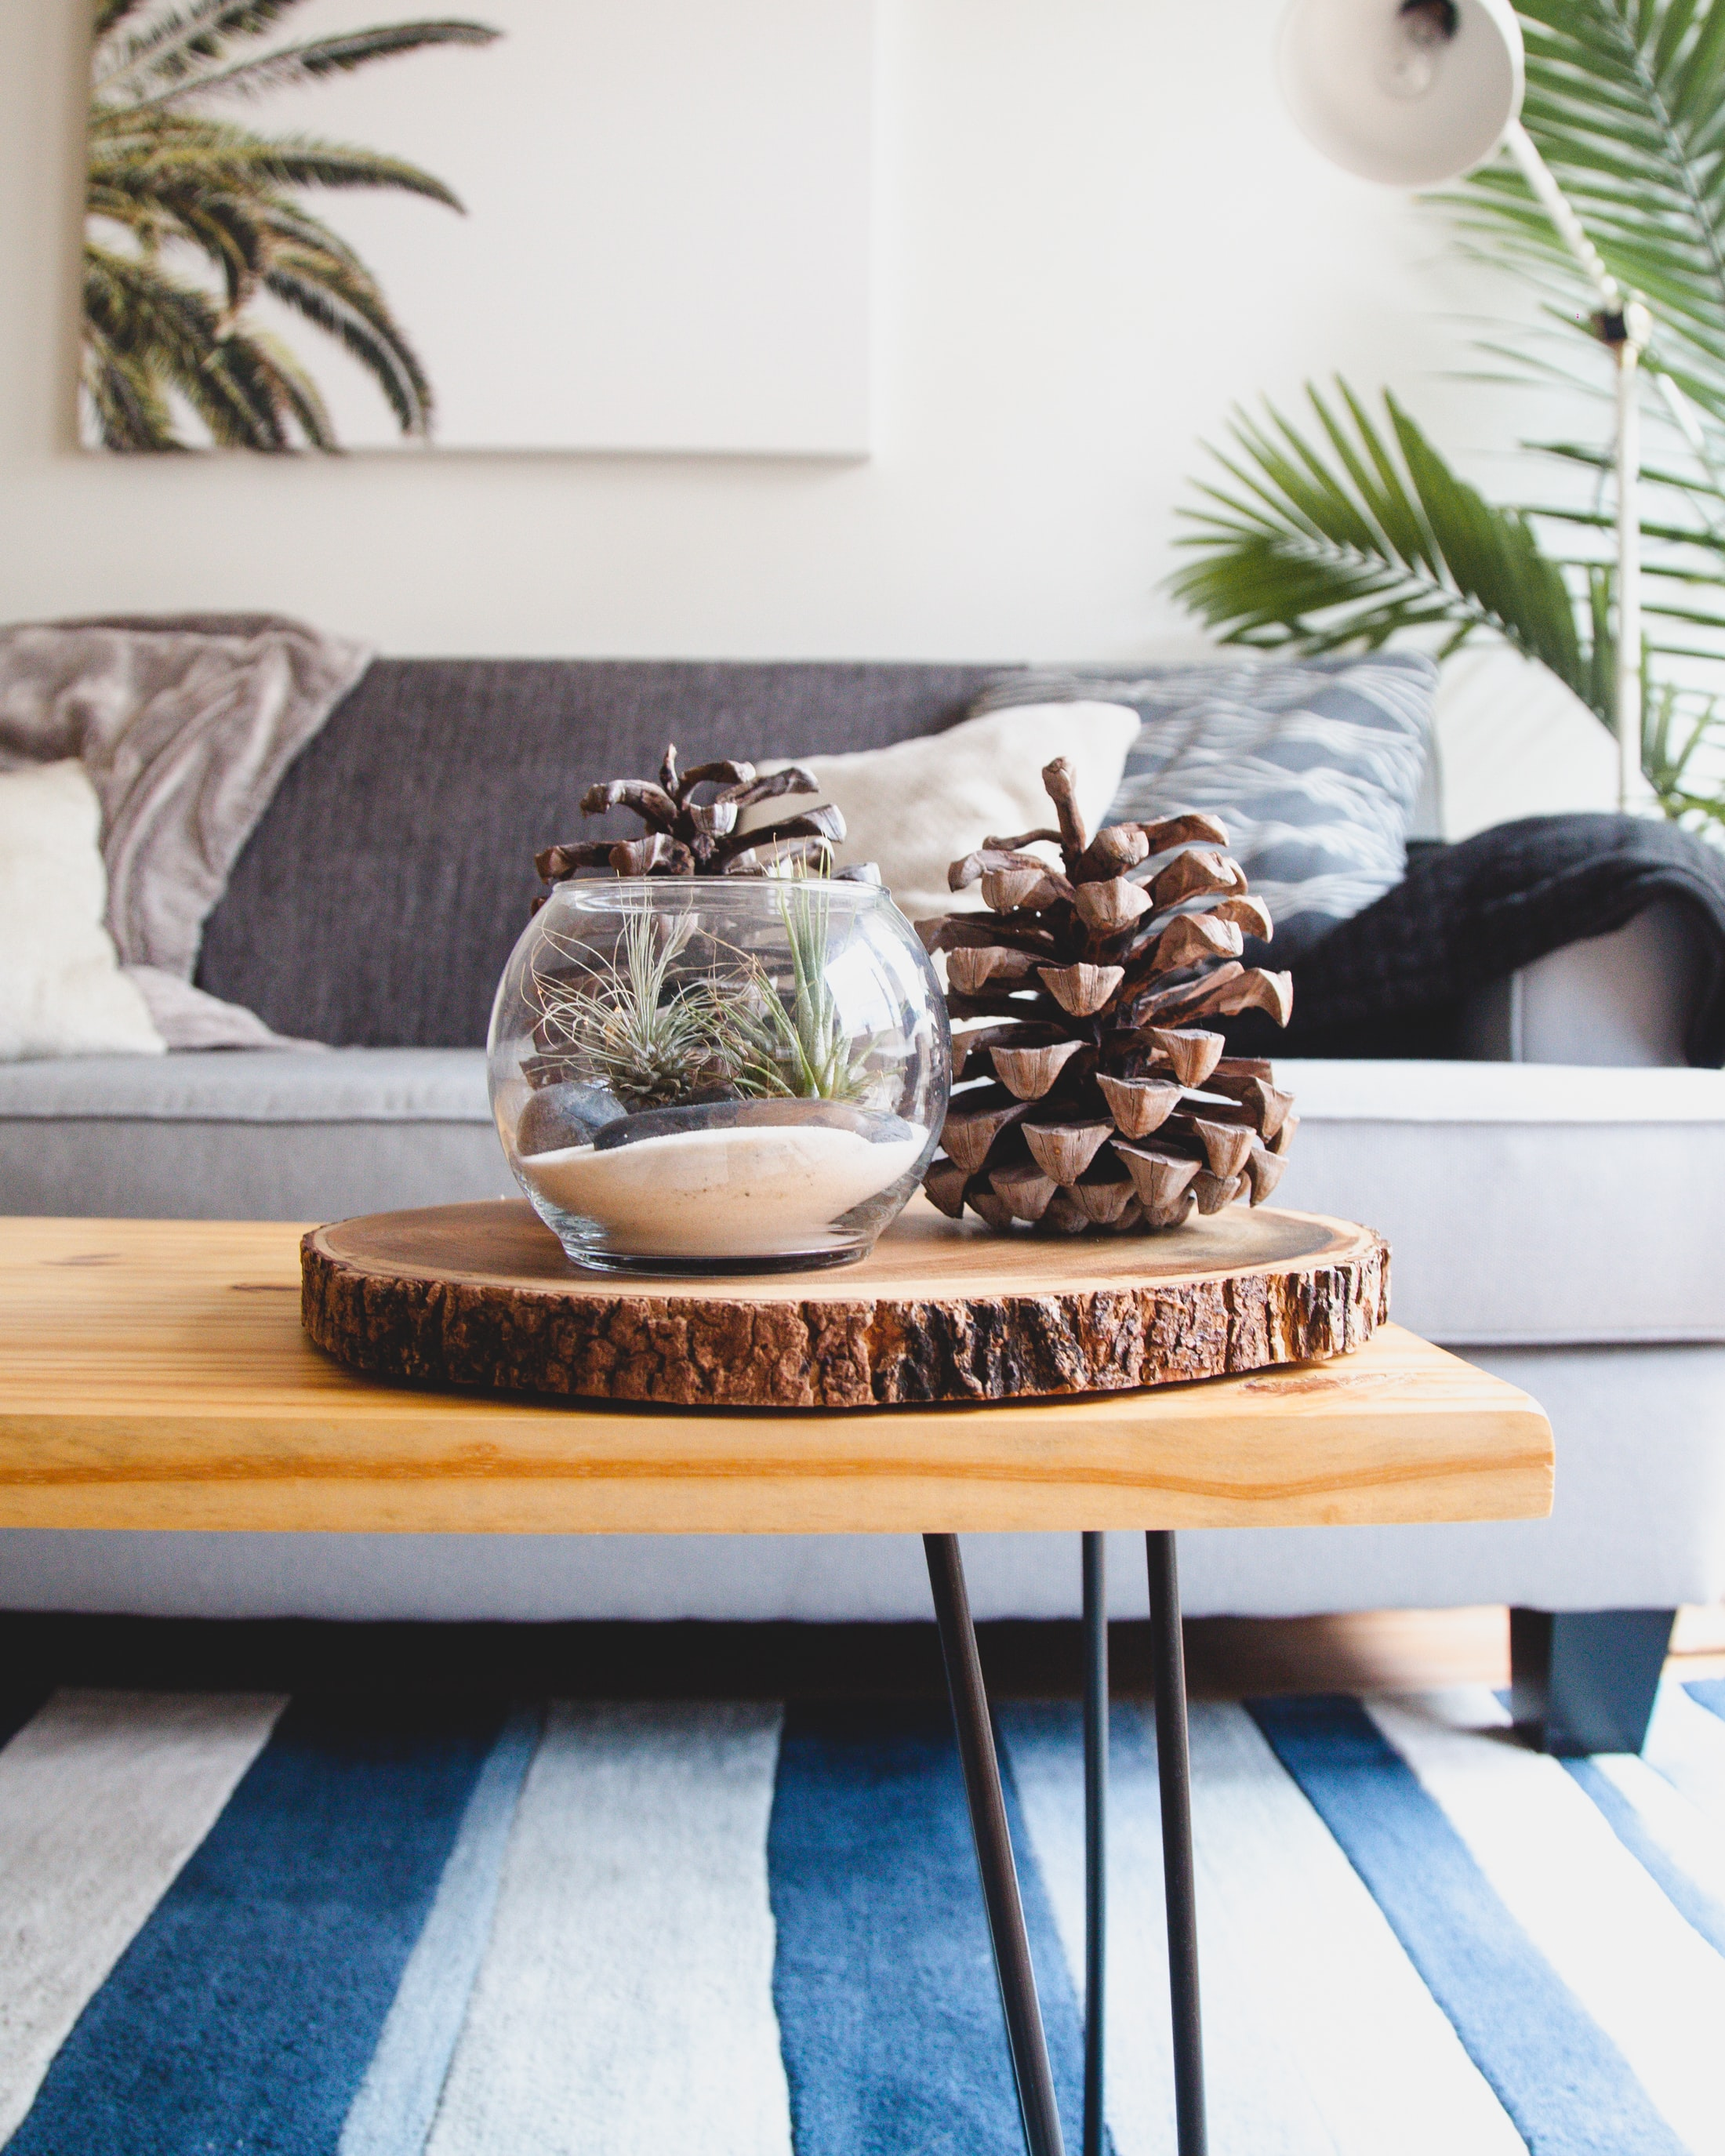 A couch with throw pillows and blankets and a table with an aquarium filled with pinecones on top of it